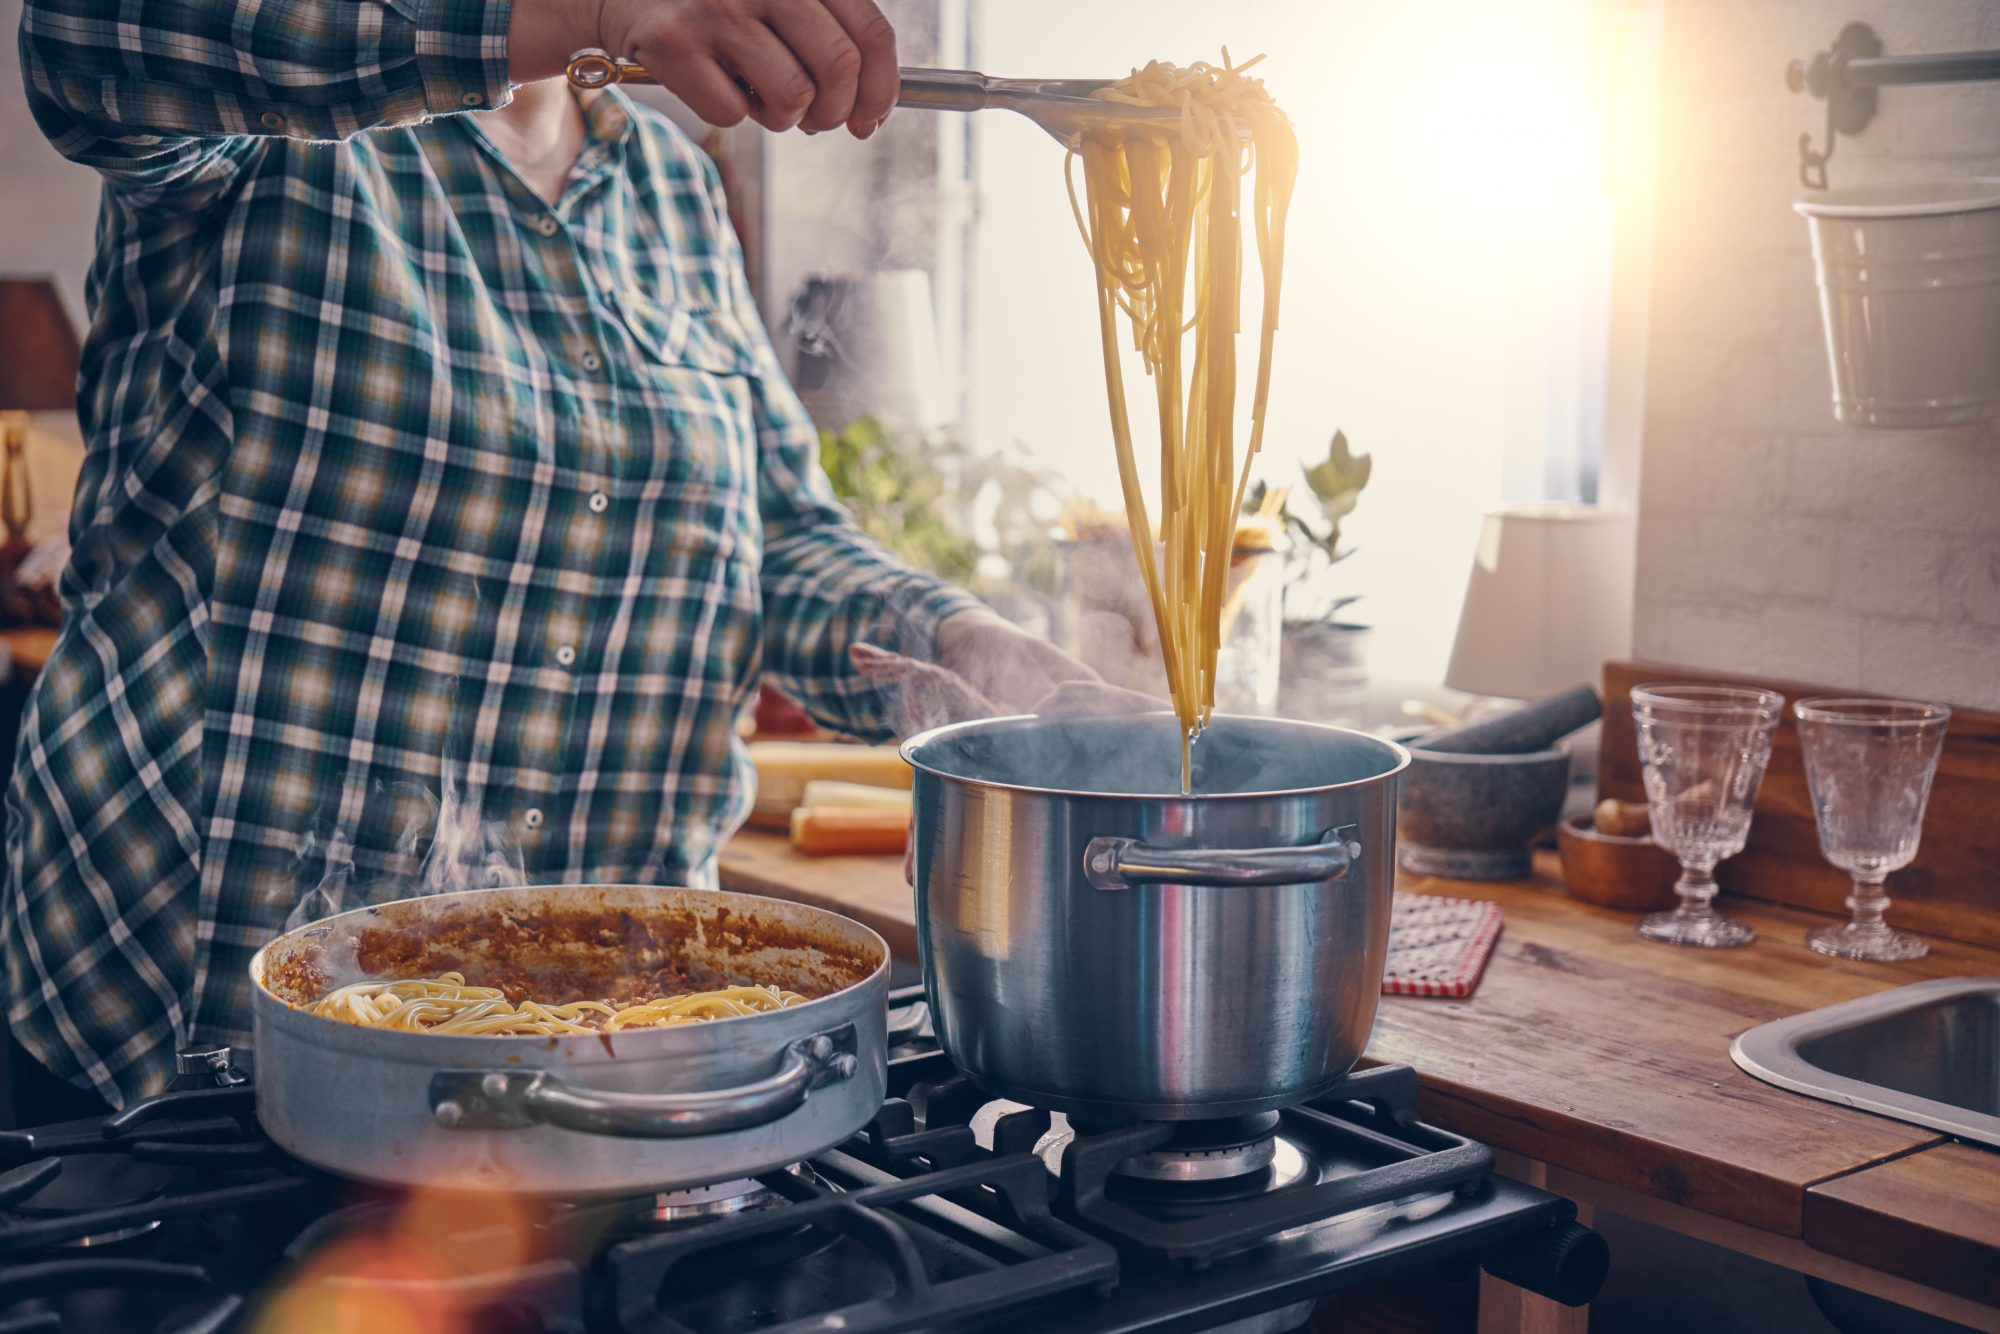 02202019_Getty Cooking Tips Image